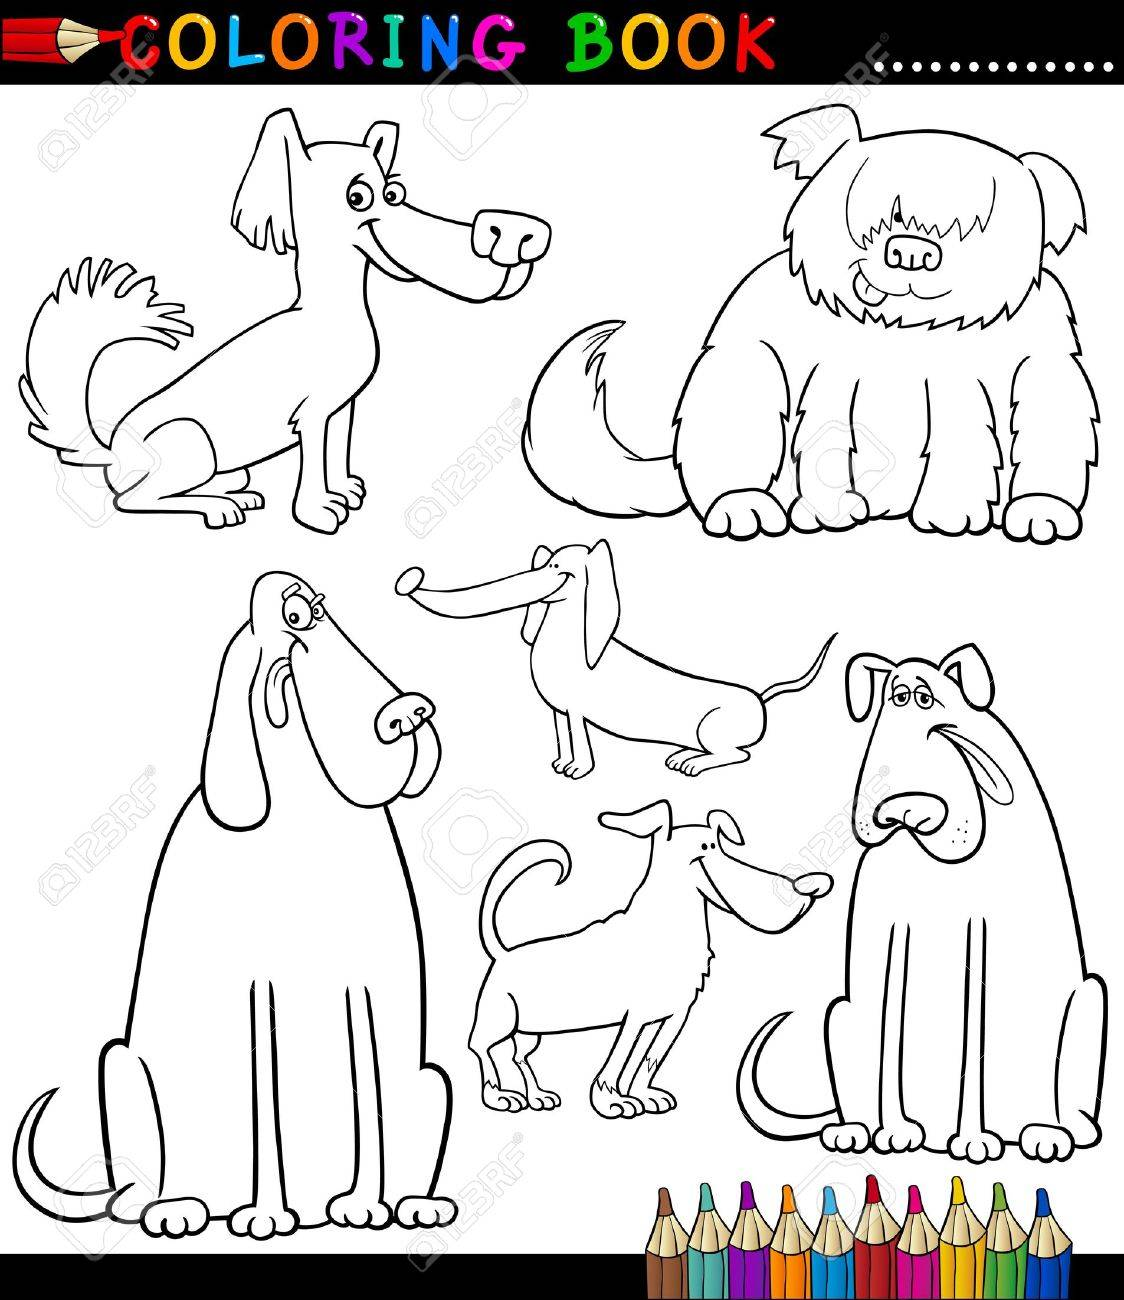 Coloring Book Or Page Black And White Cartoon Illustration Of Funny Purebred Mongrel Dogs